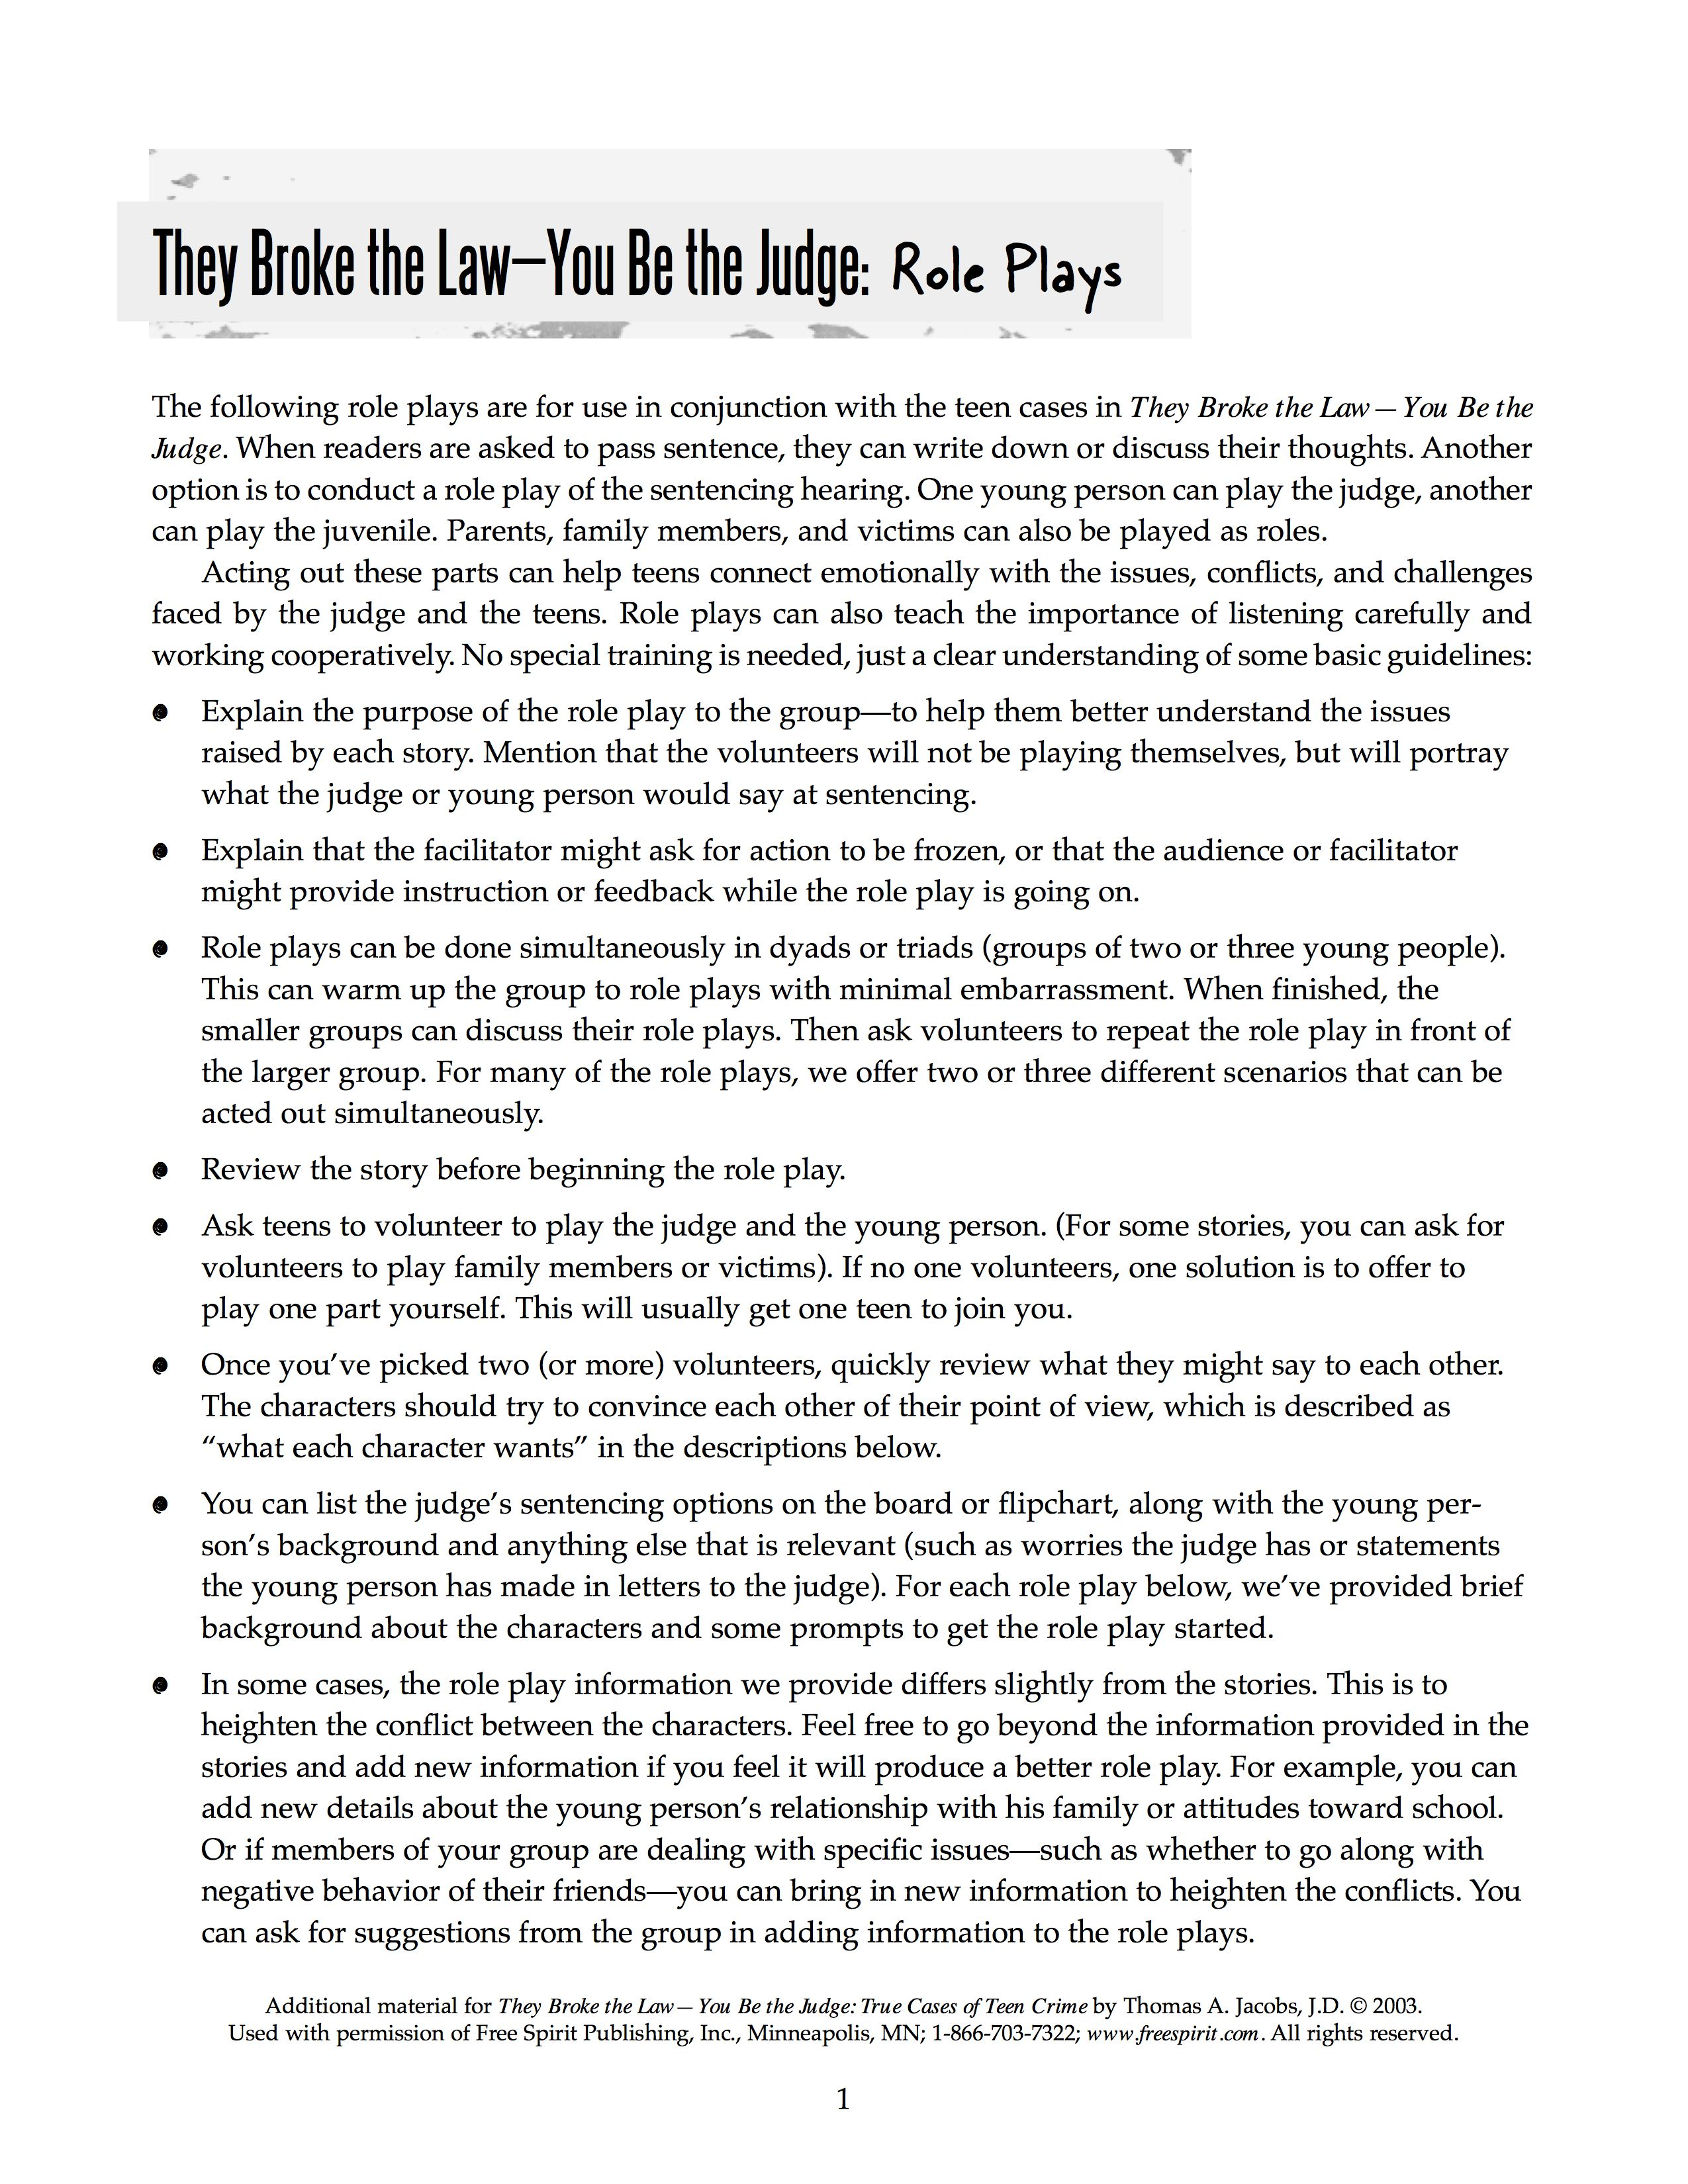 Free Printable Role Play Activities To Use With They Broke The Law You Be The Judge The Book